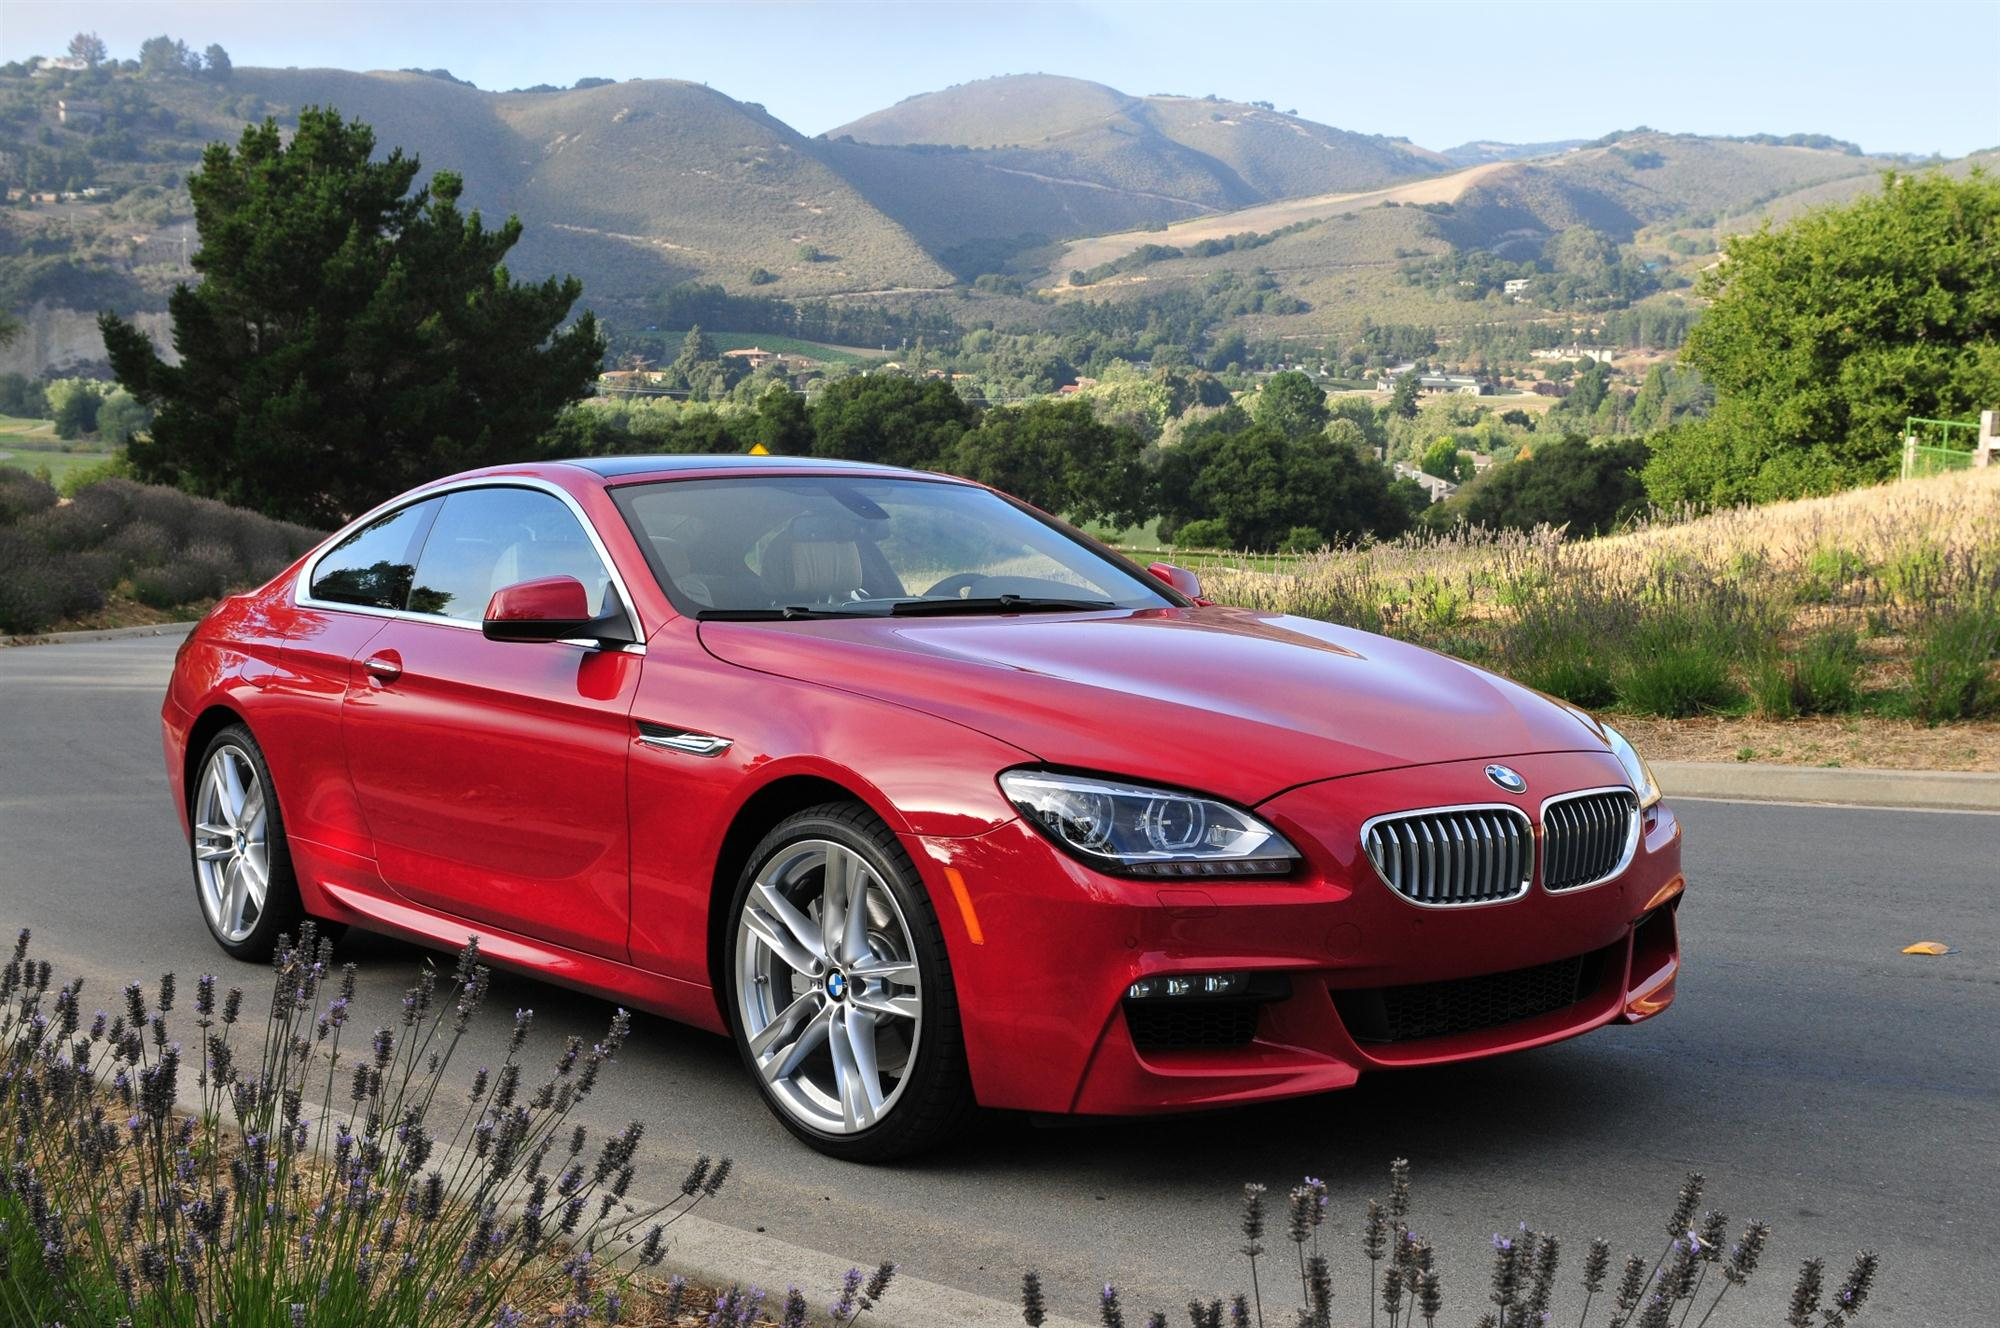 2012 Bmw 650i Coupe First Drive